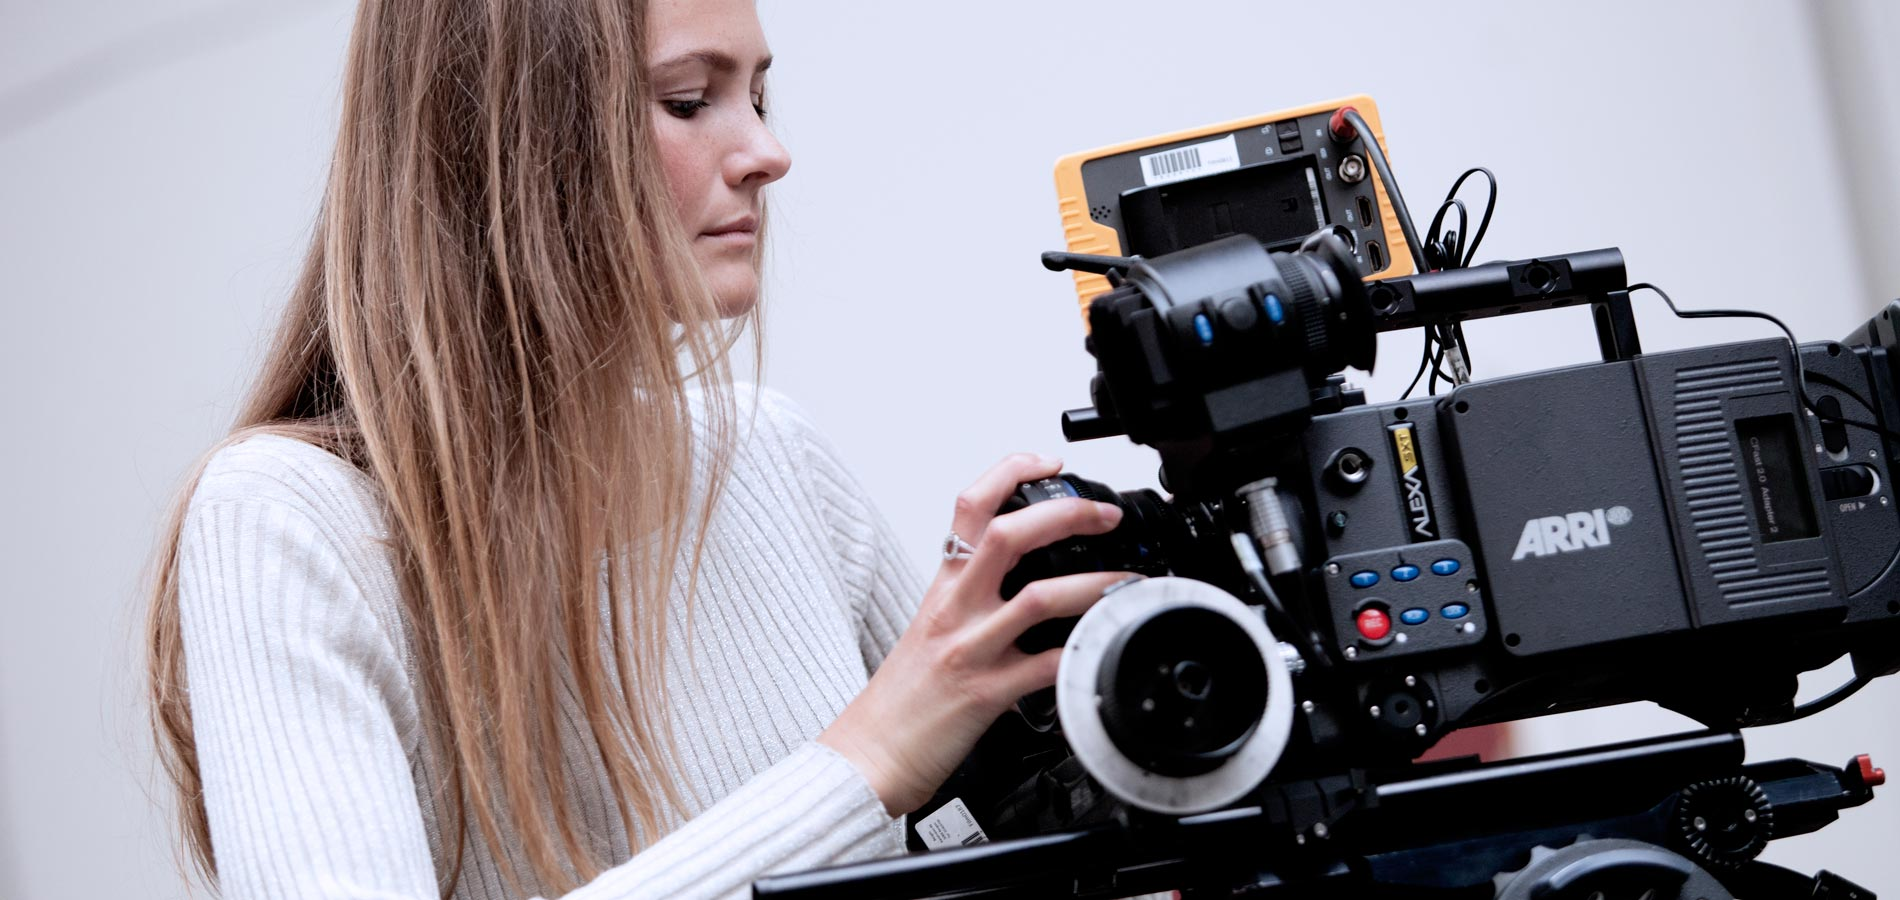 Film prodution, vocational education